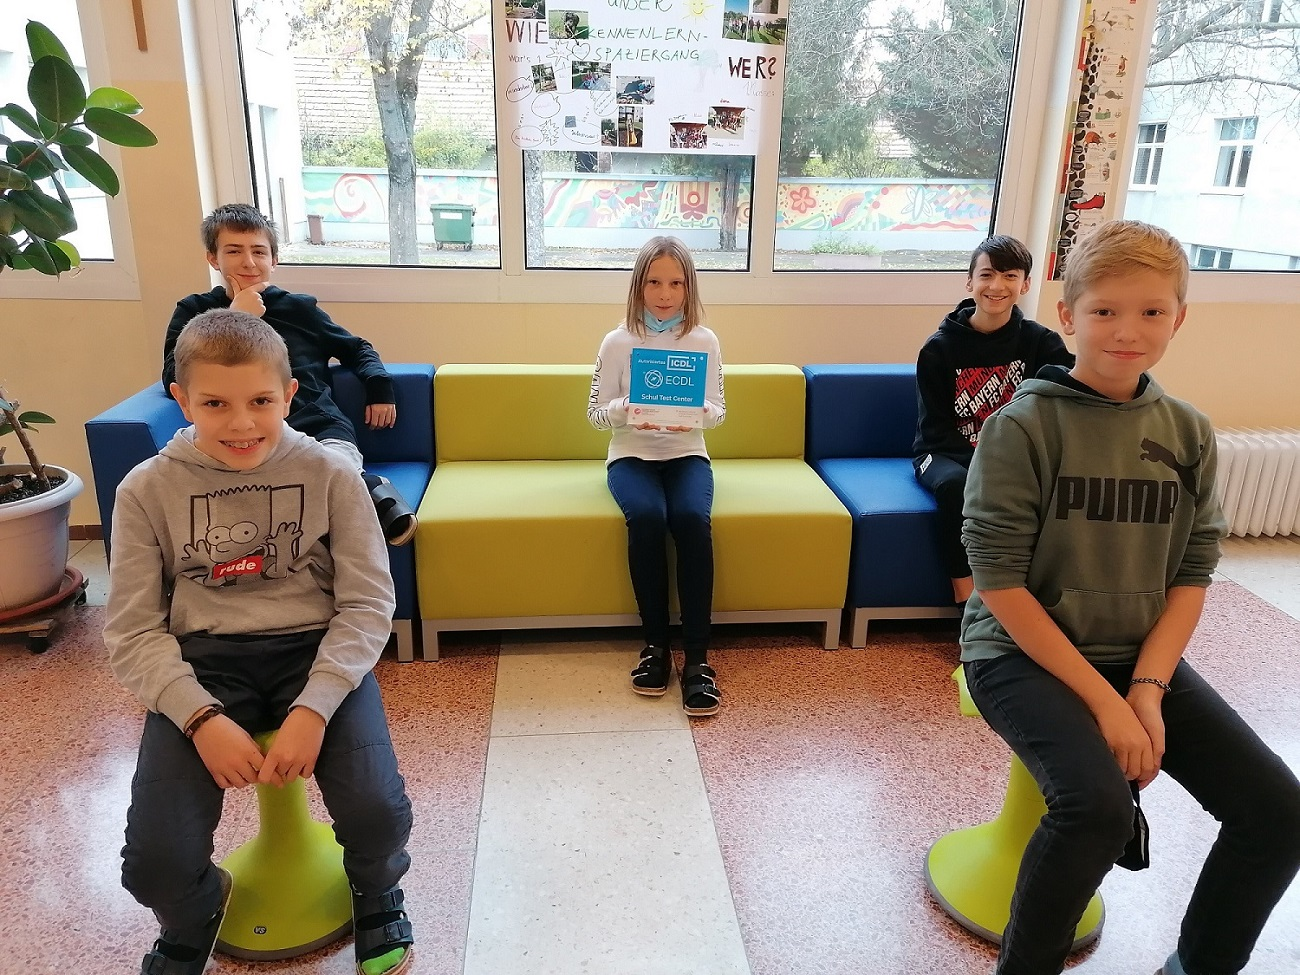 ecdl-schul-test-center-ms-schattendorf